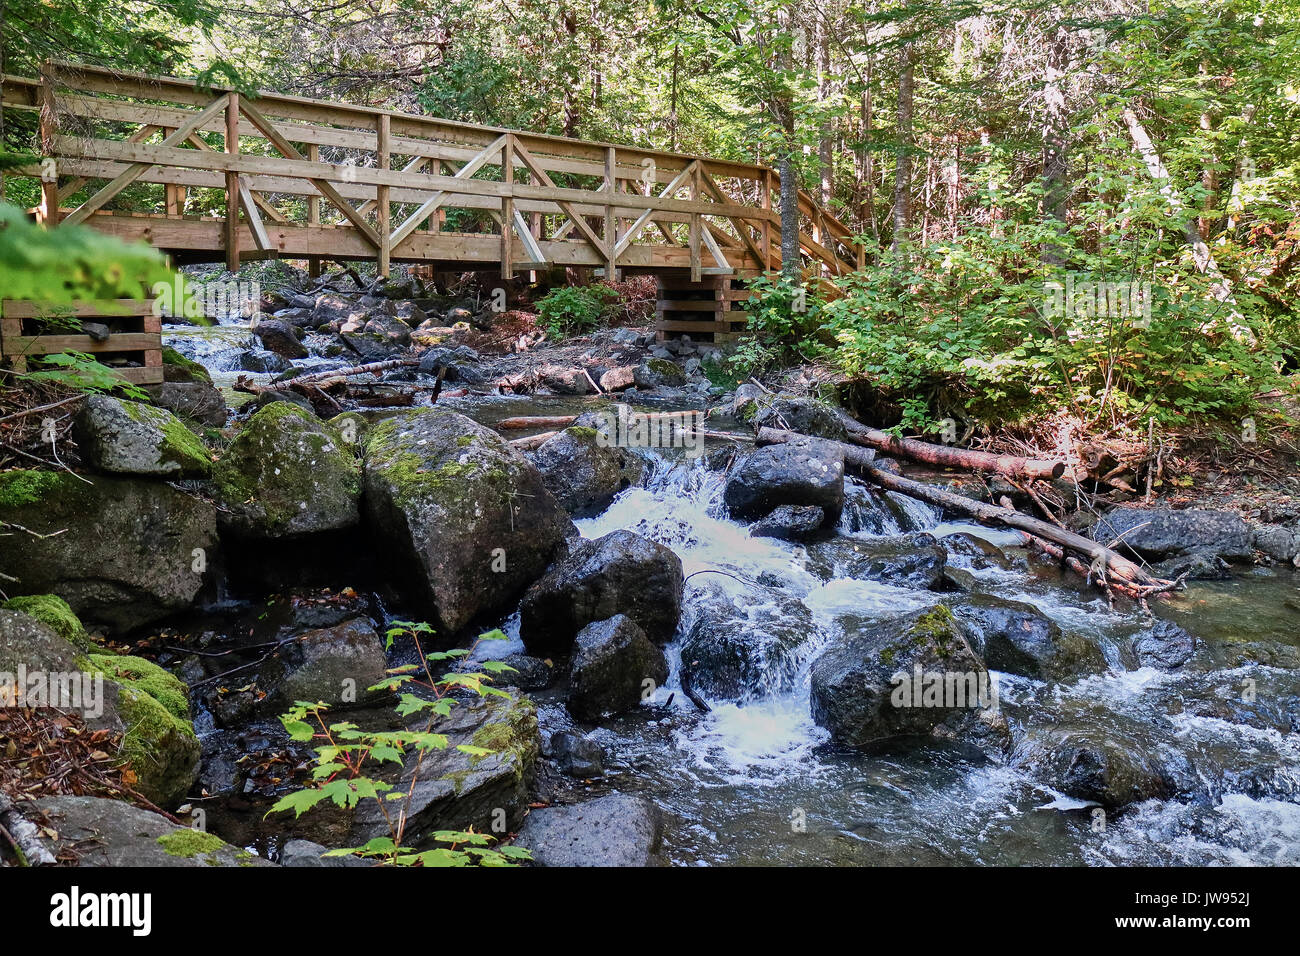 America, Canada, Québec, Gaspésie, Carleton area, on the way until Mont St-Joseph, Grand Saut falls area - Stock Image